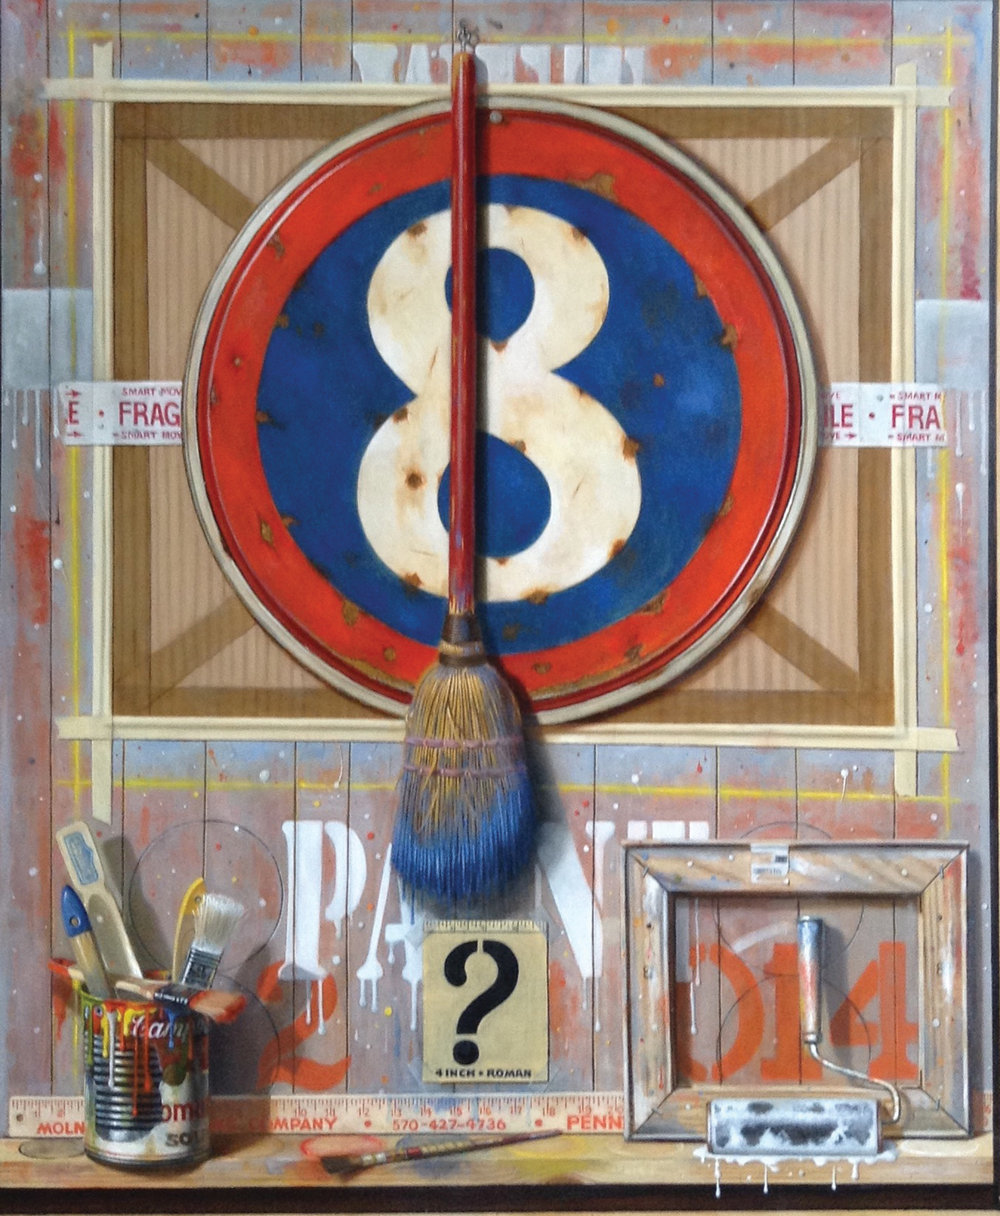 Michael Molnar Title: Number Eight Size: 48 x 38 x 3 Price: $25000